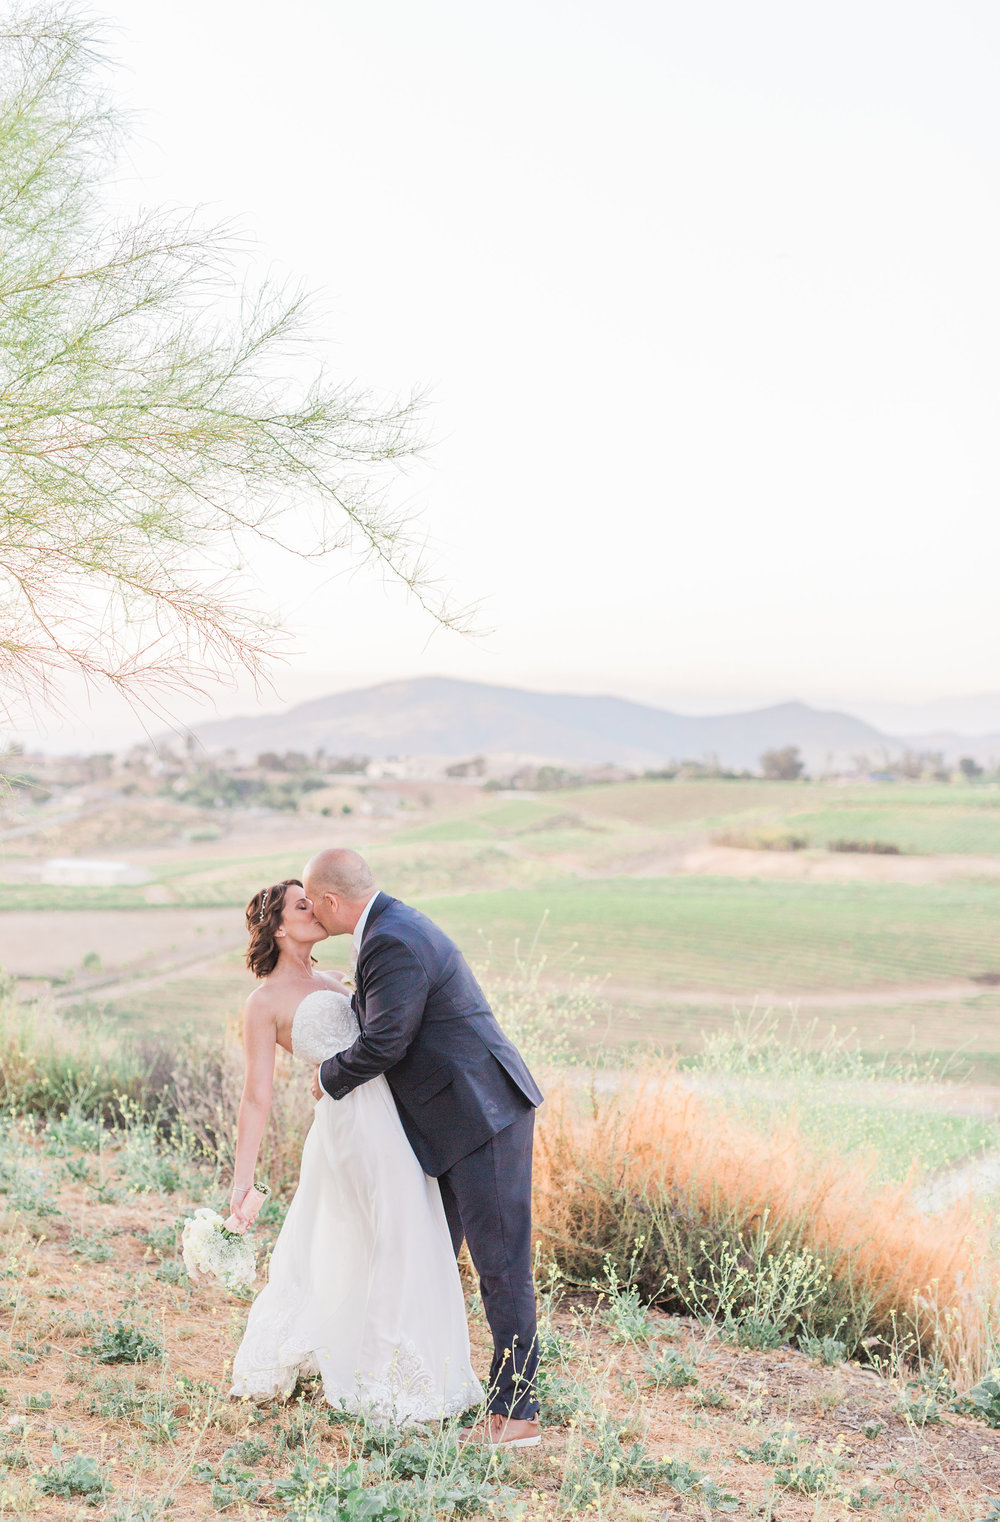 photography tips, wedding photography tips, wide shots, 35mm